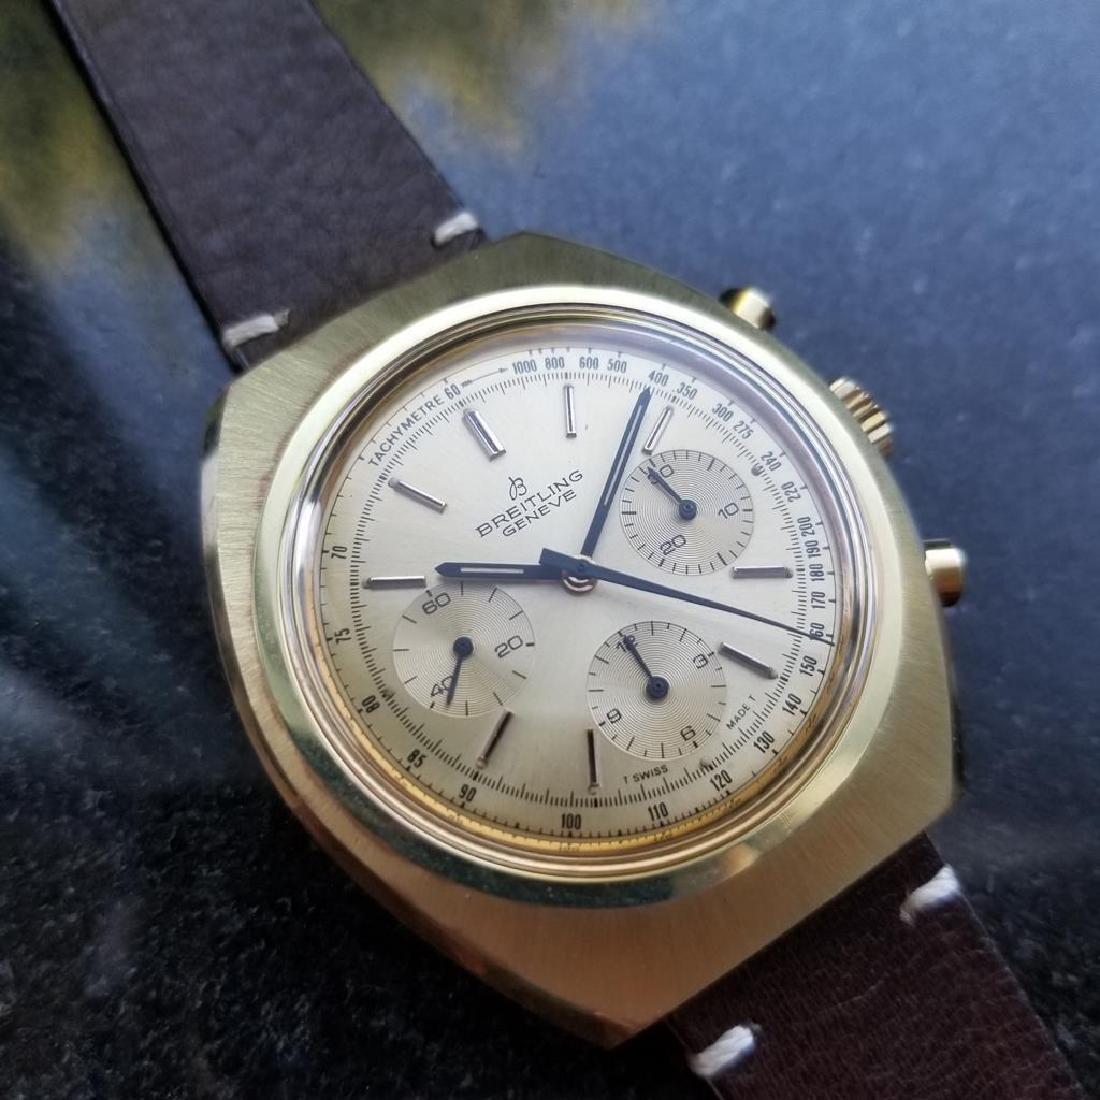 BREITLING 1451 Tricompax Manual Wind Chronograph 42mm - 3